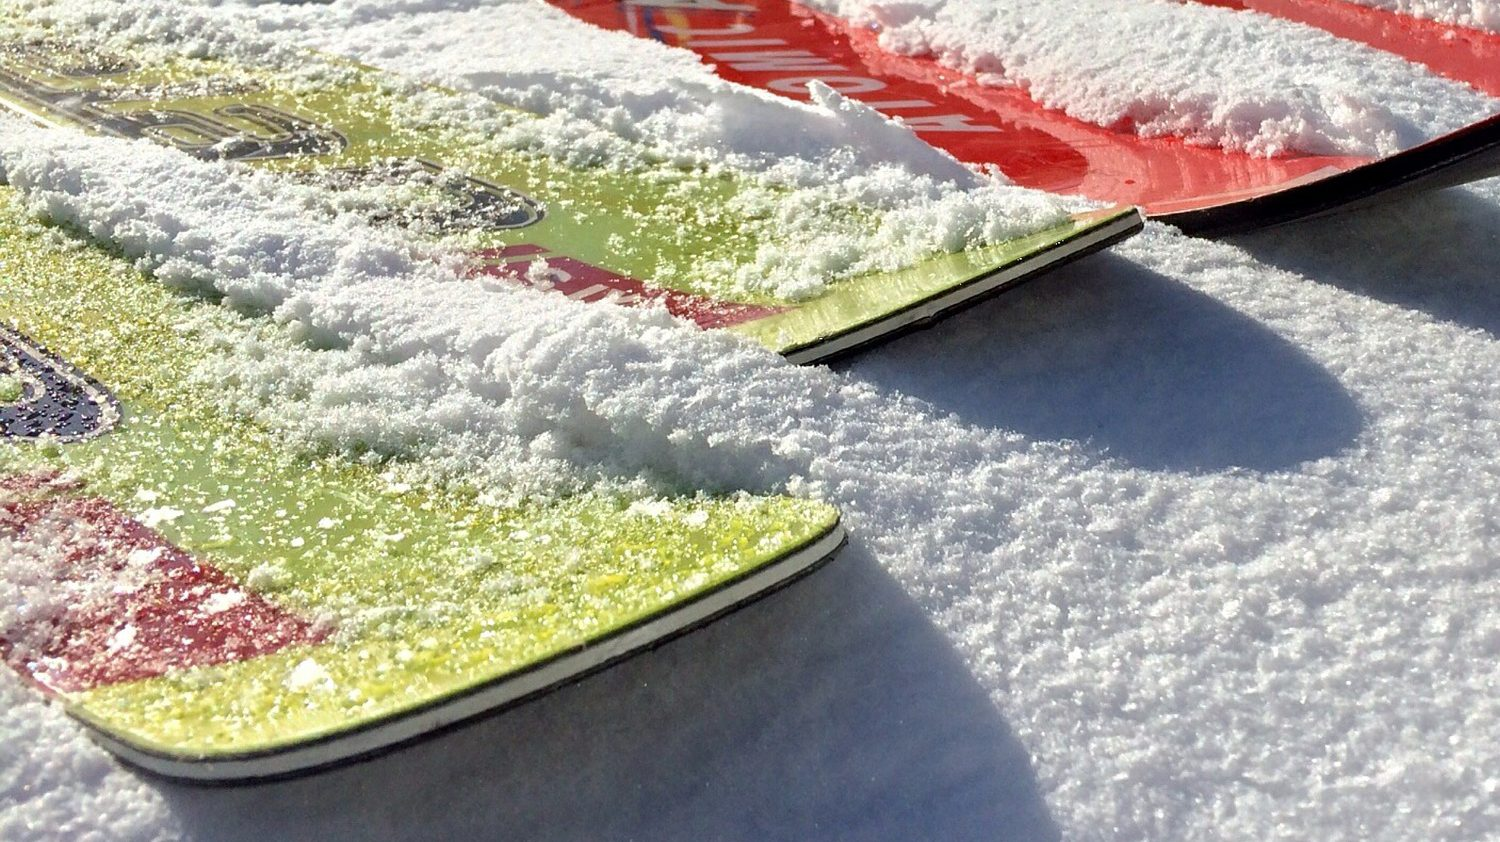 Tips for buying new skis